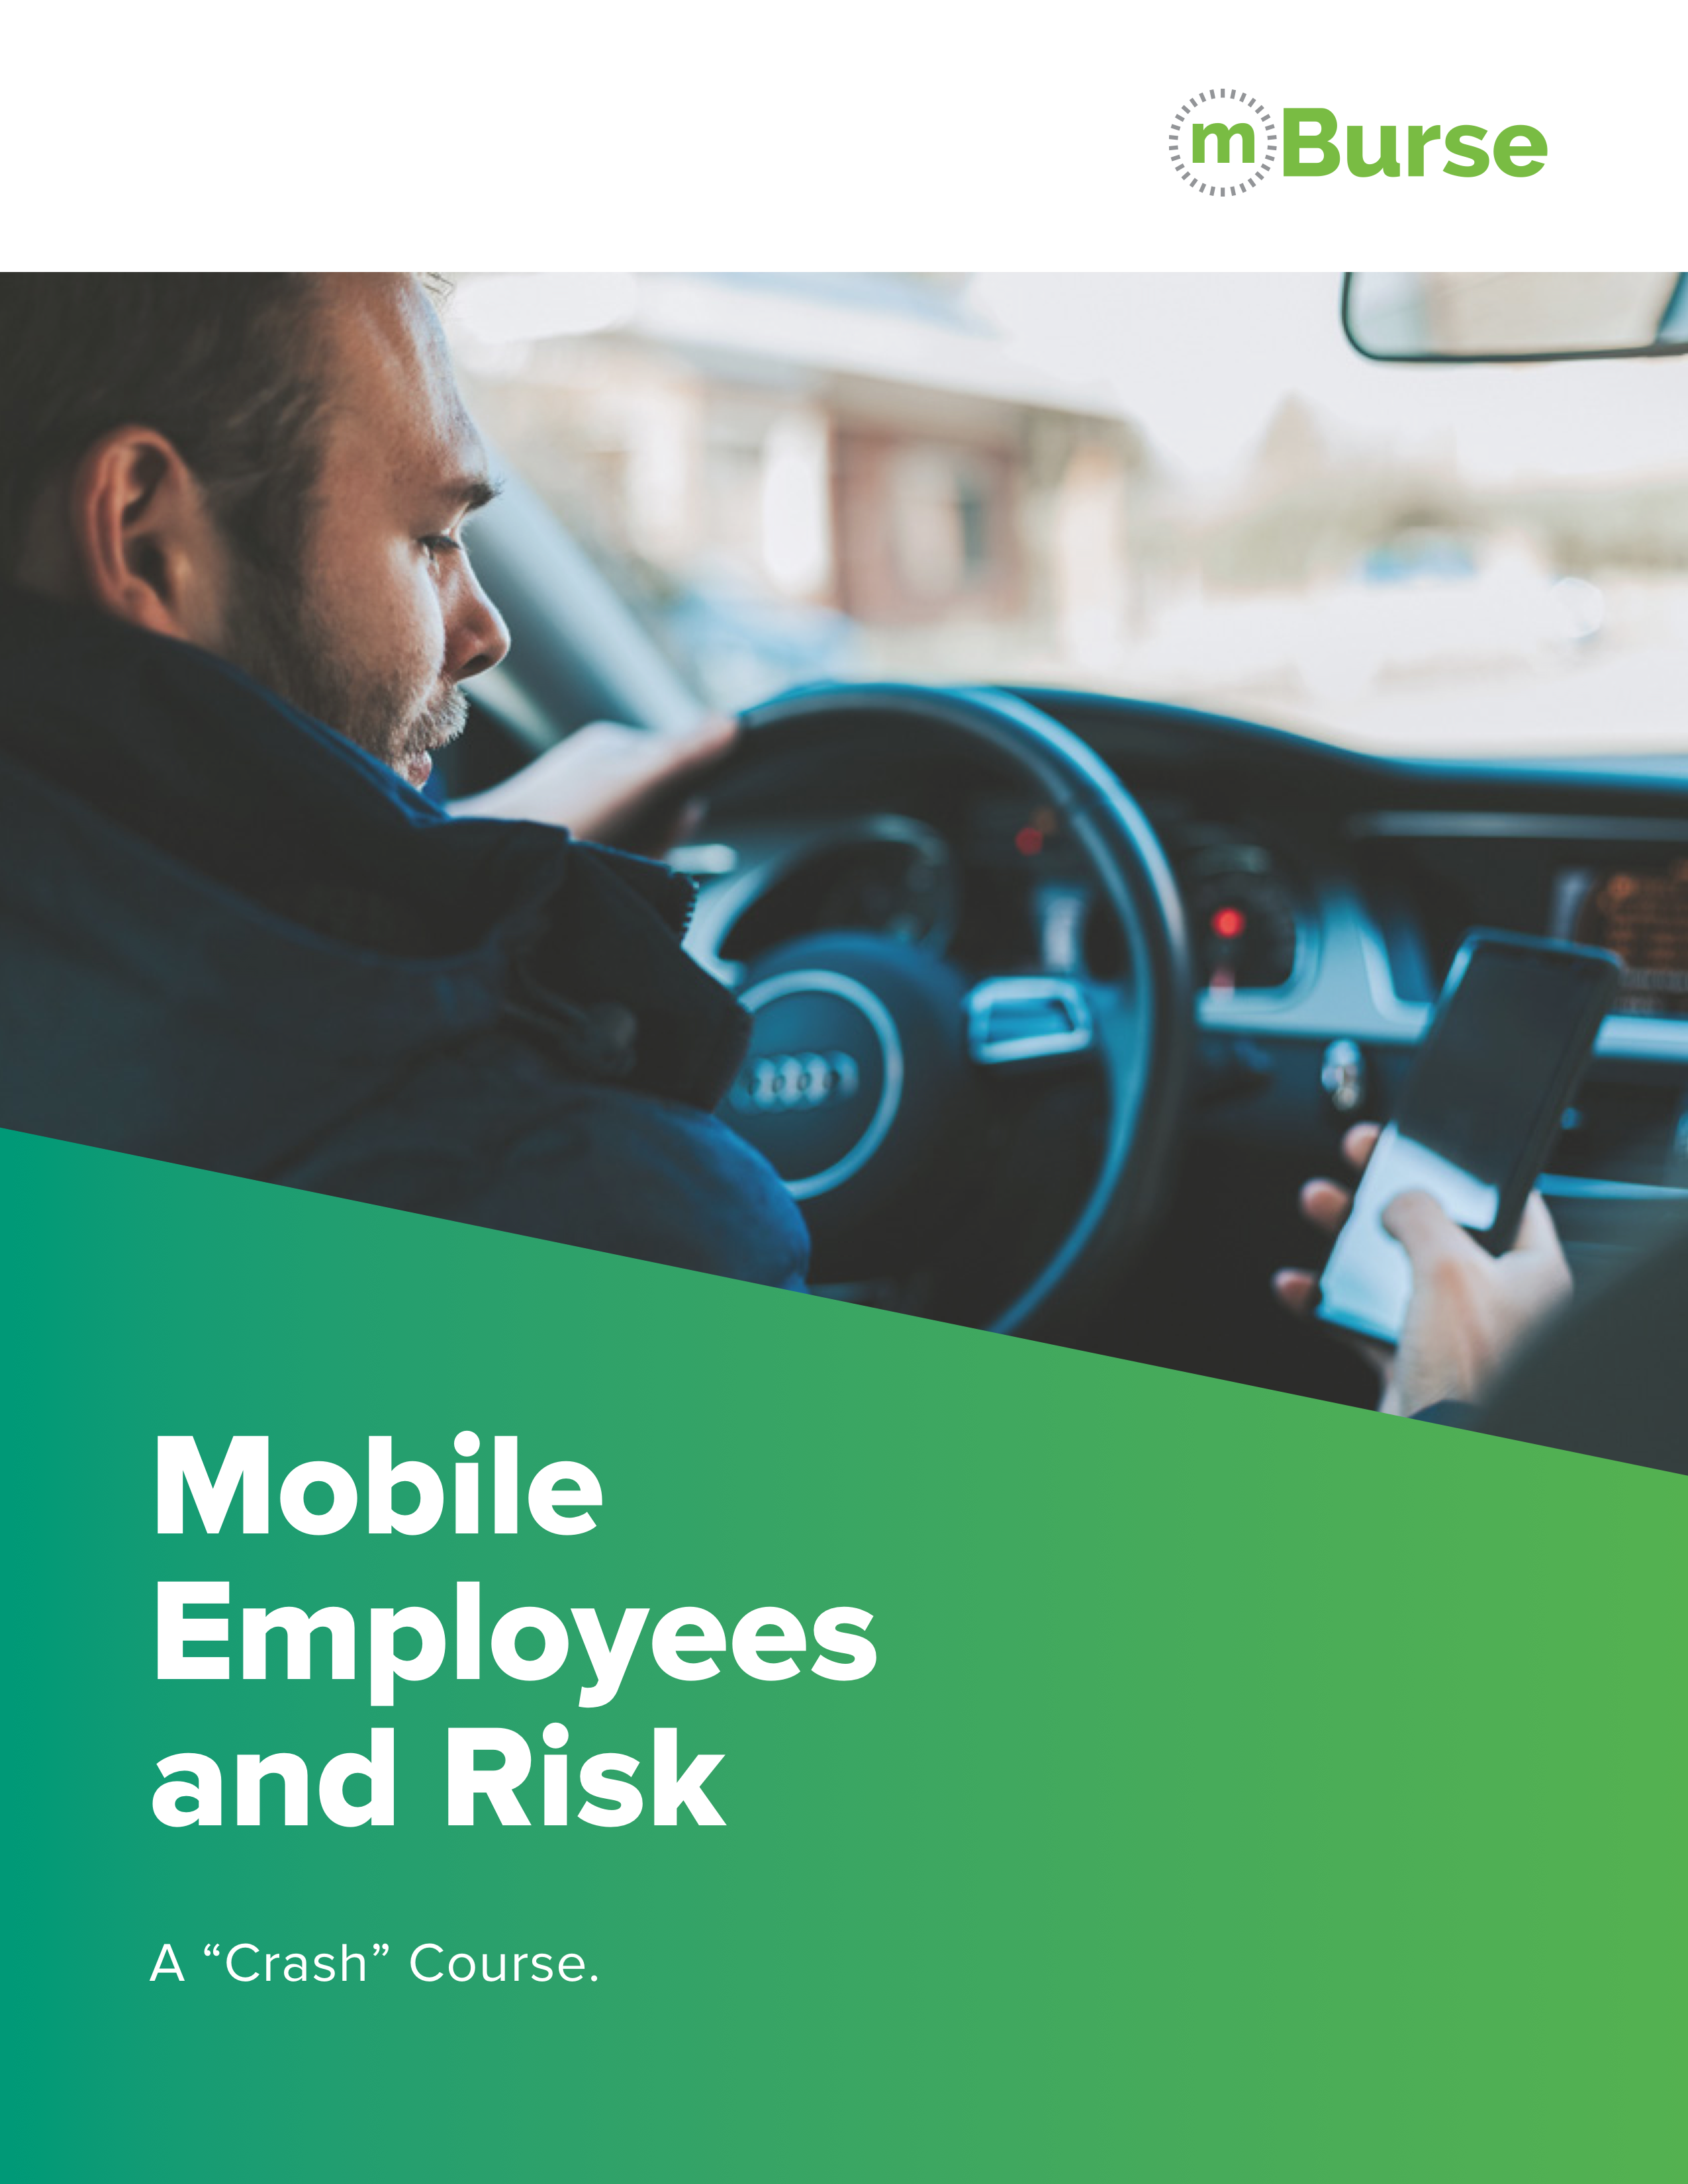 mBurse Mobile Employees and Risk eBook